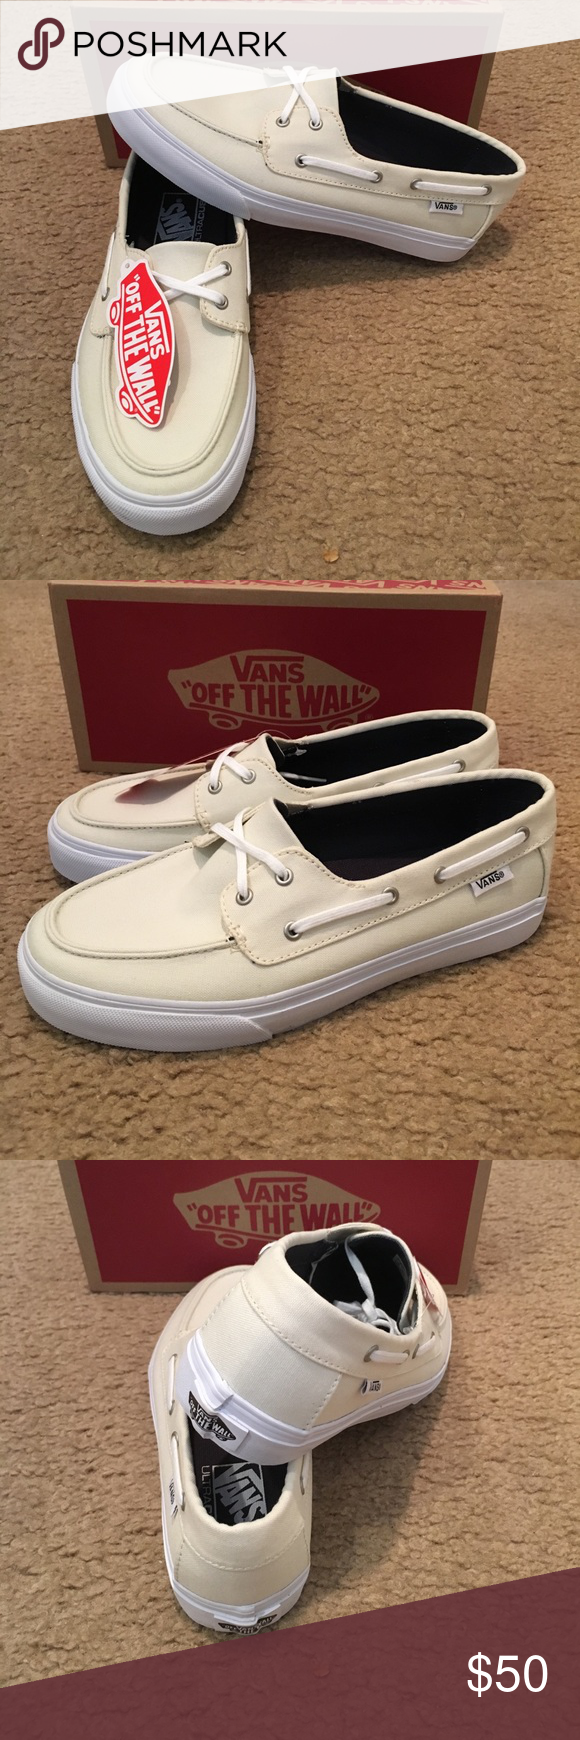 dea385708b8 Chauffette SF Vans New in box. Marshmallow Vans Shoes Flats   Loafers